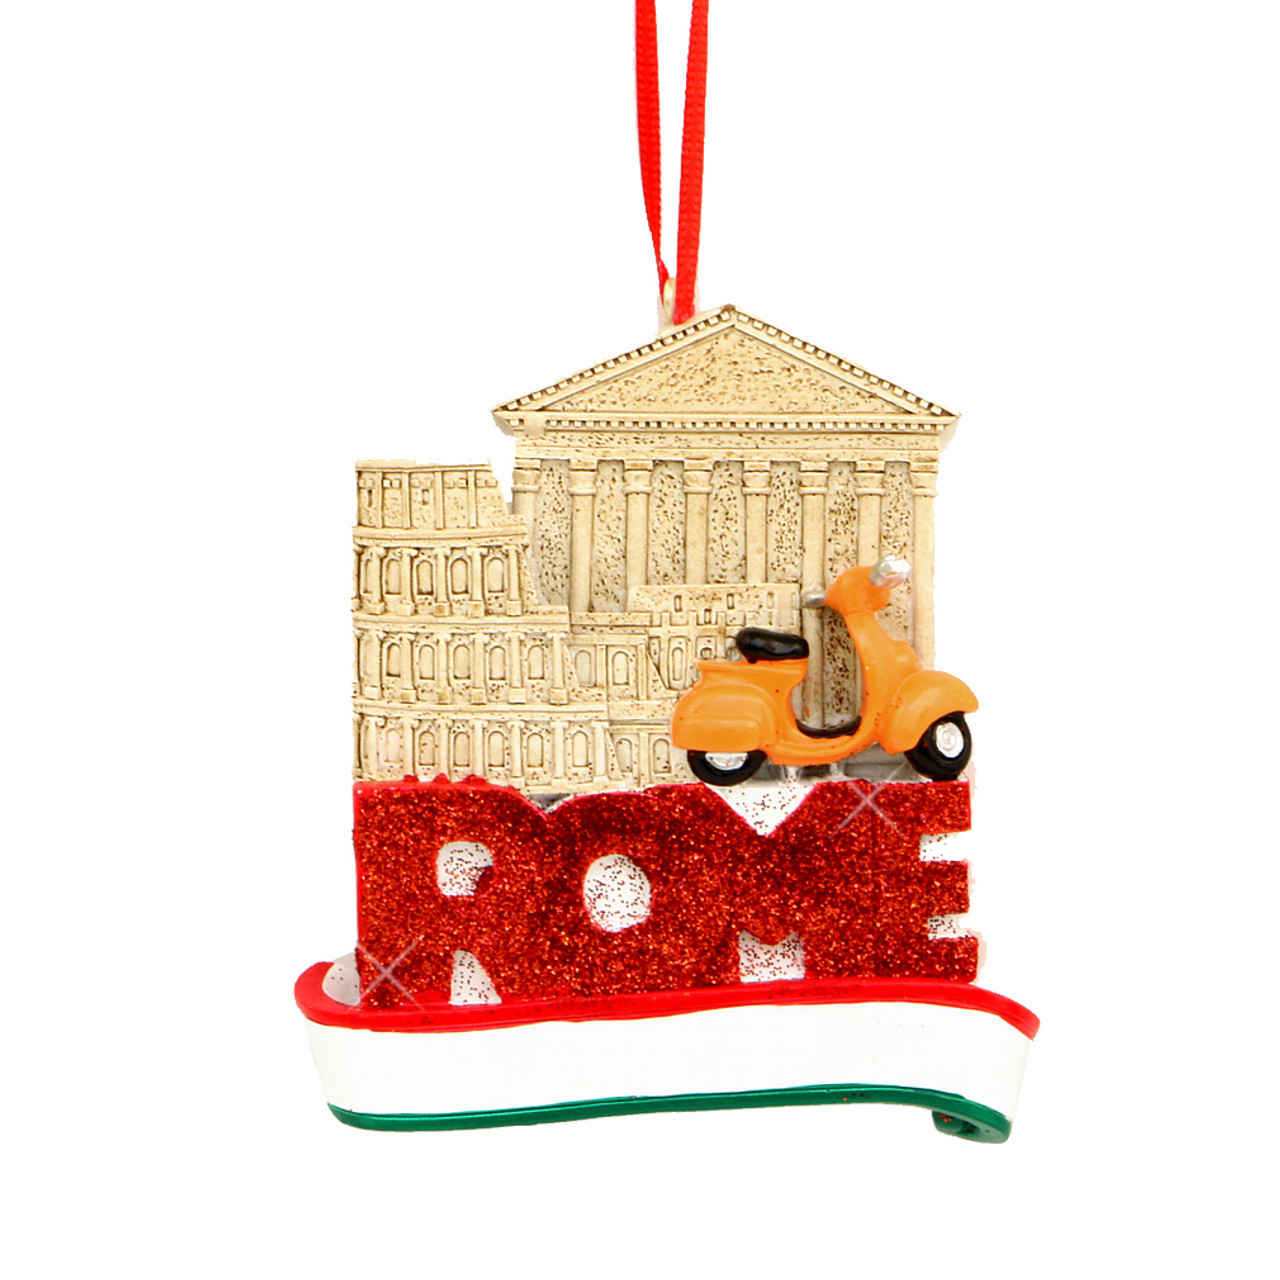 Roman Christmas Ornaments.Rome Landmarks Ornament For Personalization